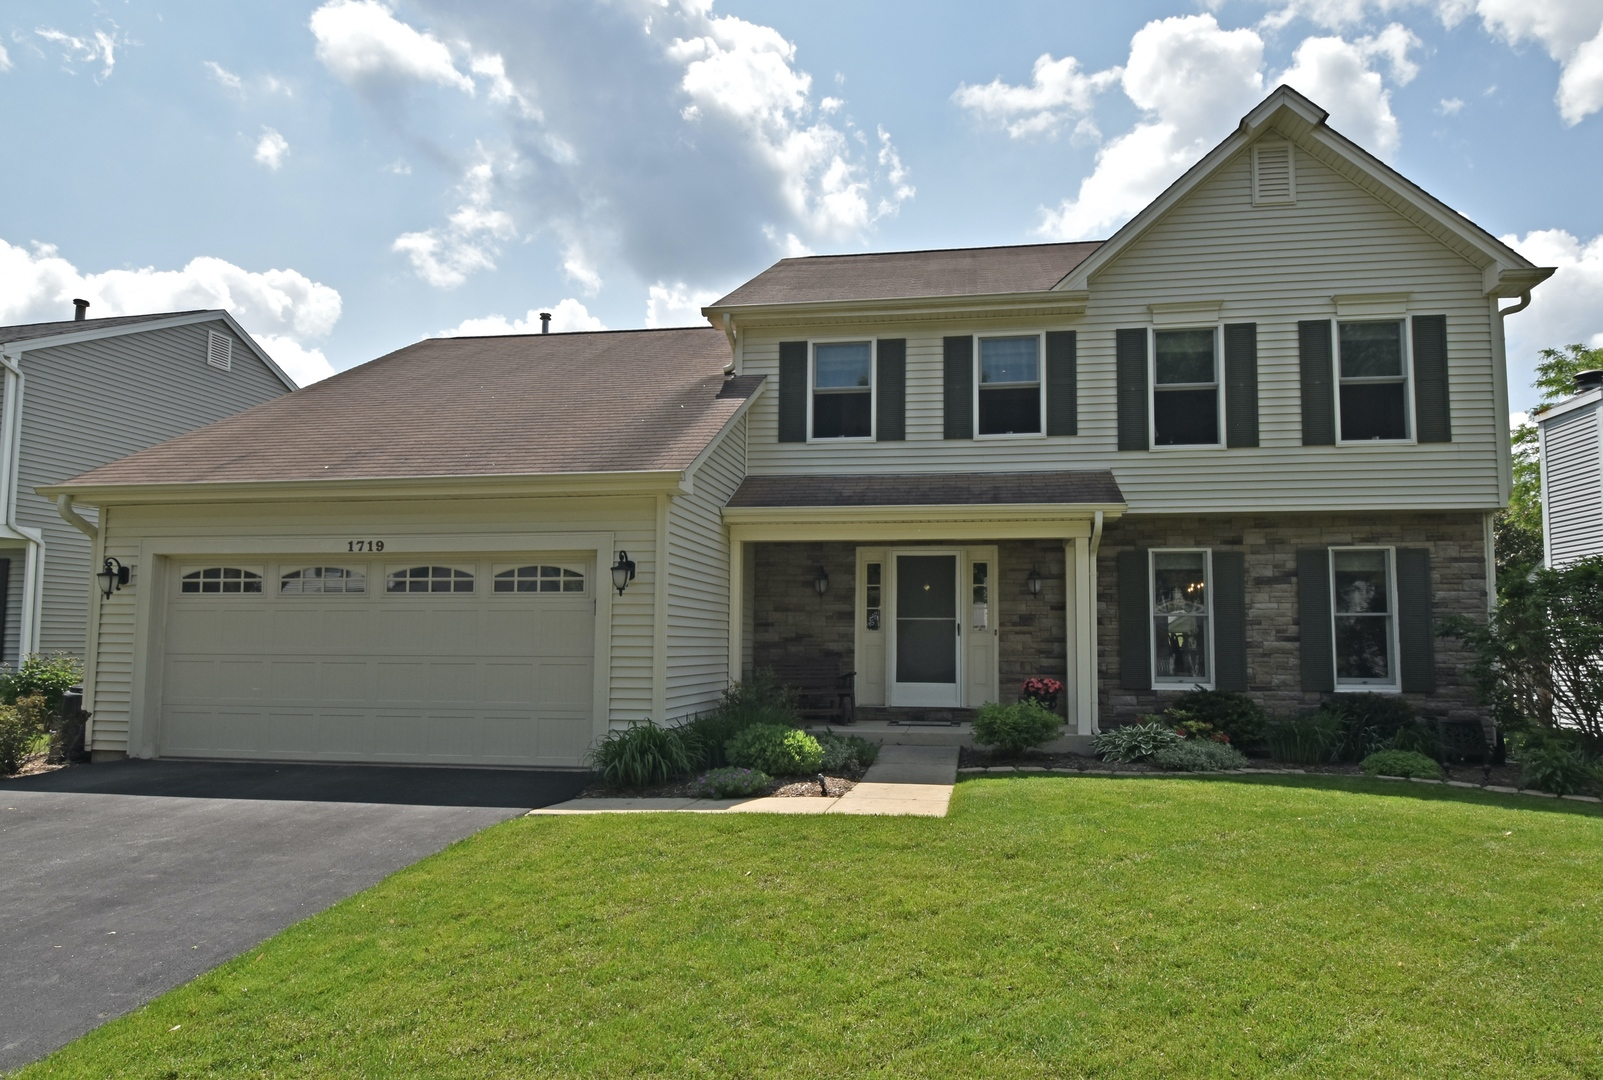 Photo for 1719 Jeanette Avenue, St. Charles, IL 60174 (MLS # 10632519)